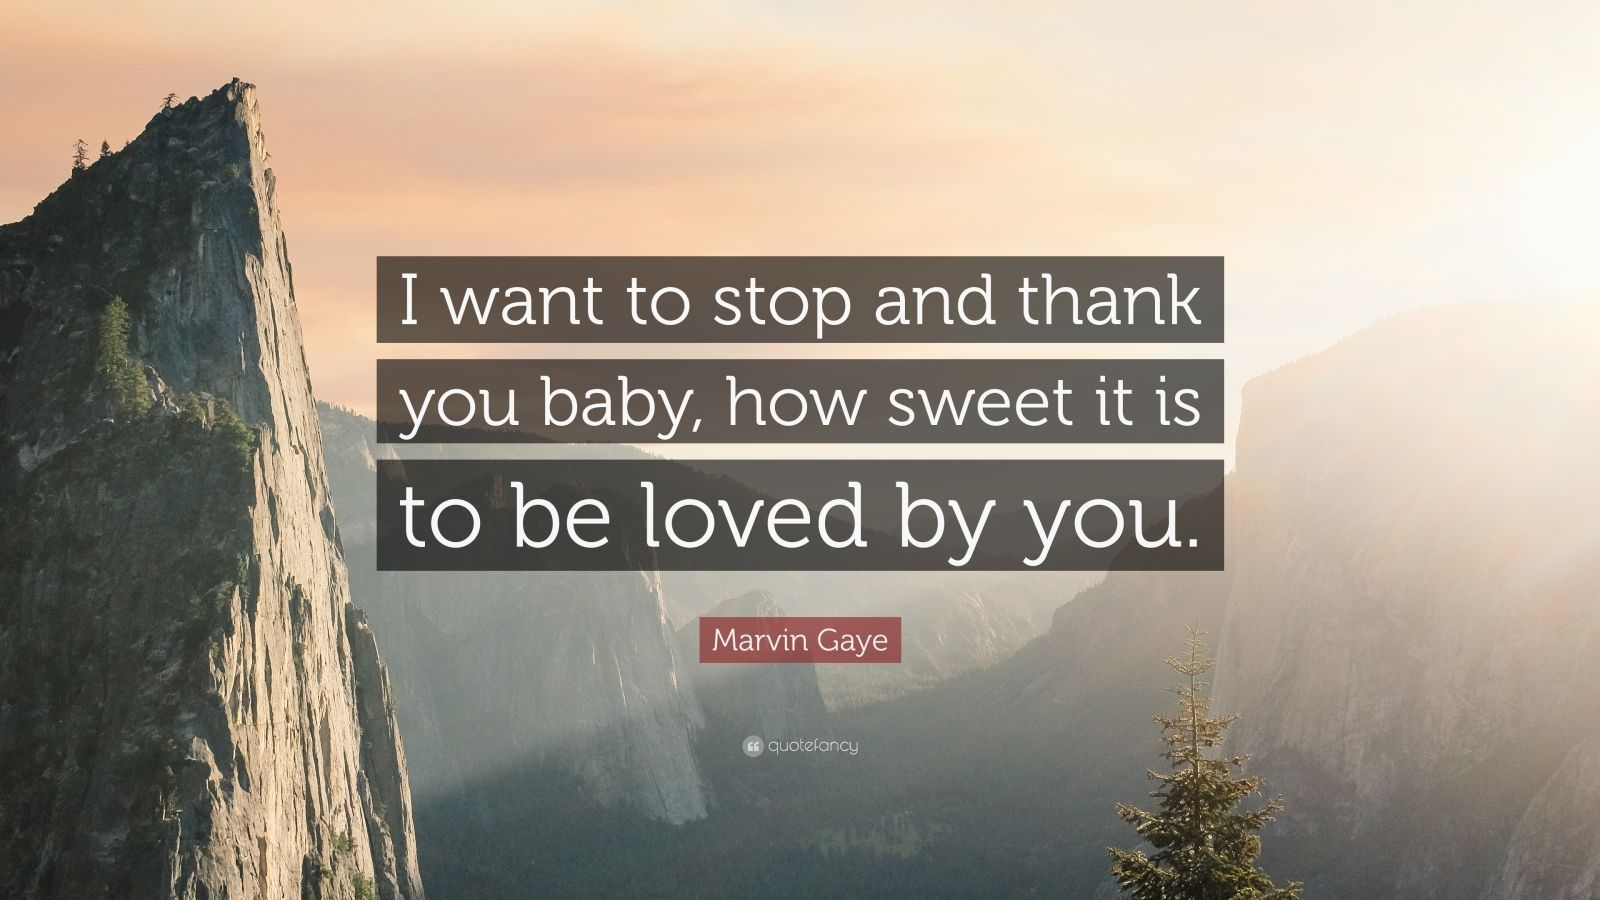 """Marvin Gaye Quote: """"I want to stop and thank you baby, how sweet it is to be loved by you."""""""